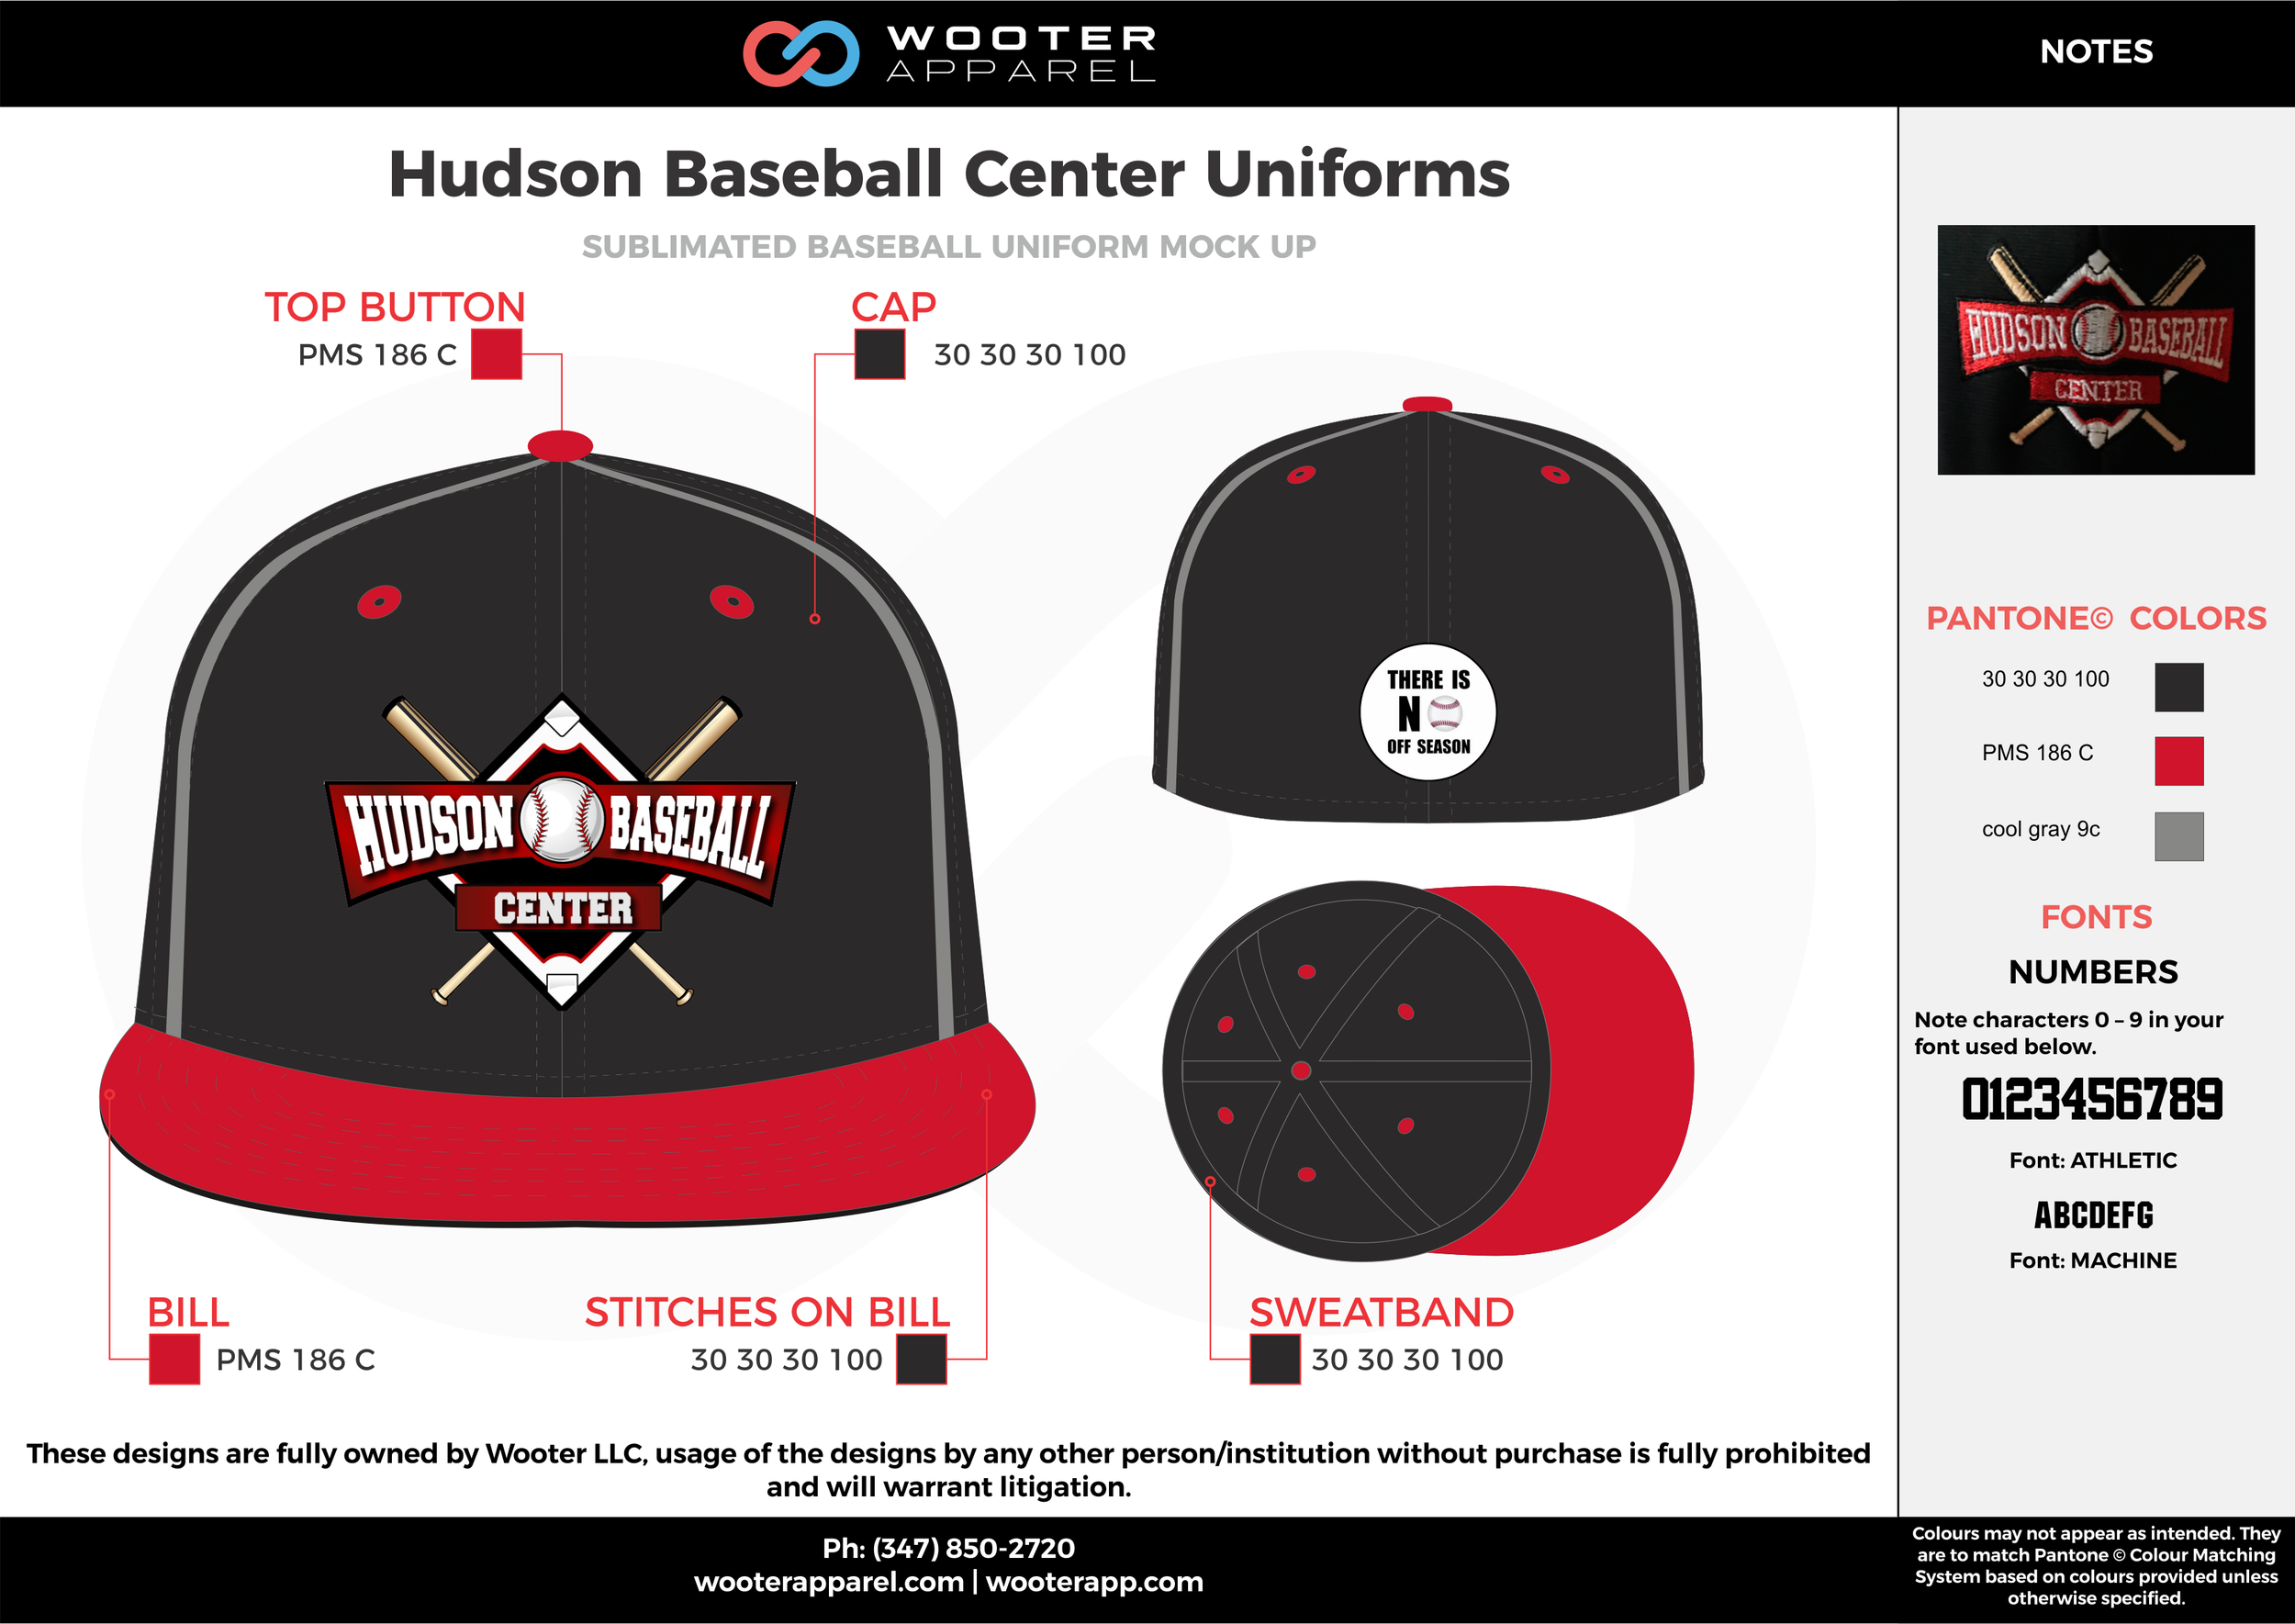 HUDSON BASEBALL CENTER UNIFORMS red black gray baseball uniforms cap